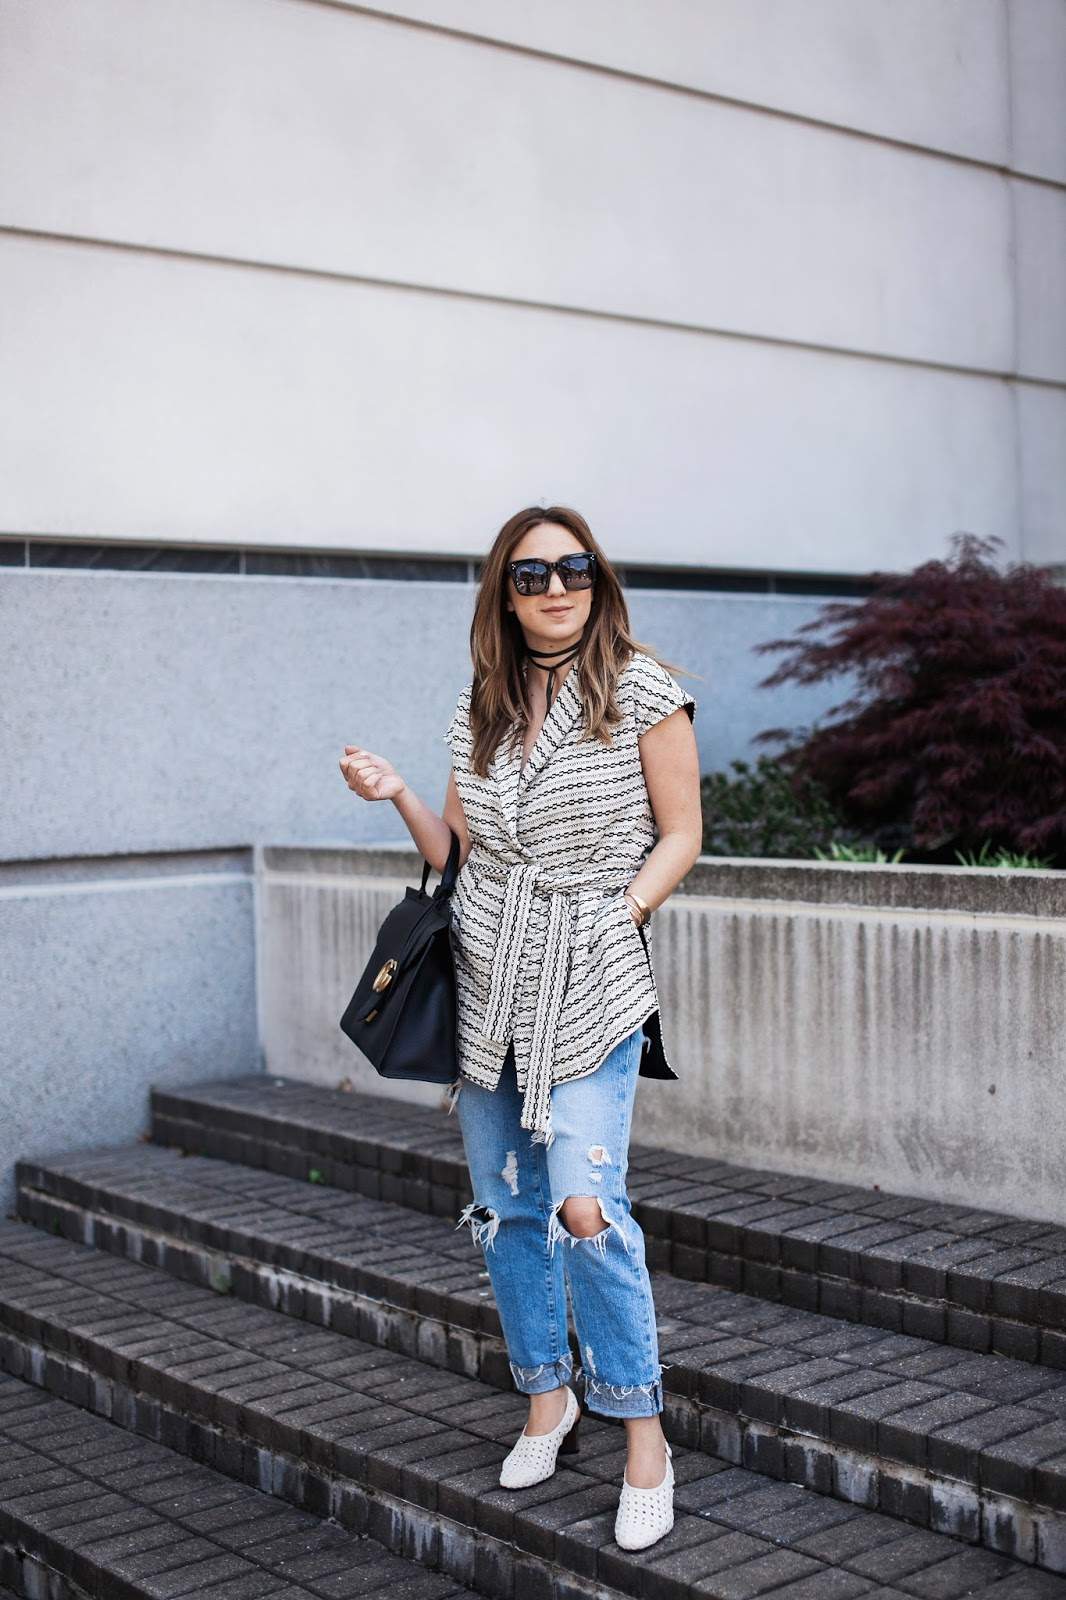 celine sunglasses, woven, shoes, heels, gucci, marmont, handbag, distressed, boyfriend jeans, outfit, fashion, style, blog, blogger, dc, dc blogger, georgetown, store, ann mashburn